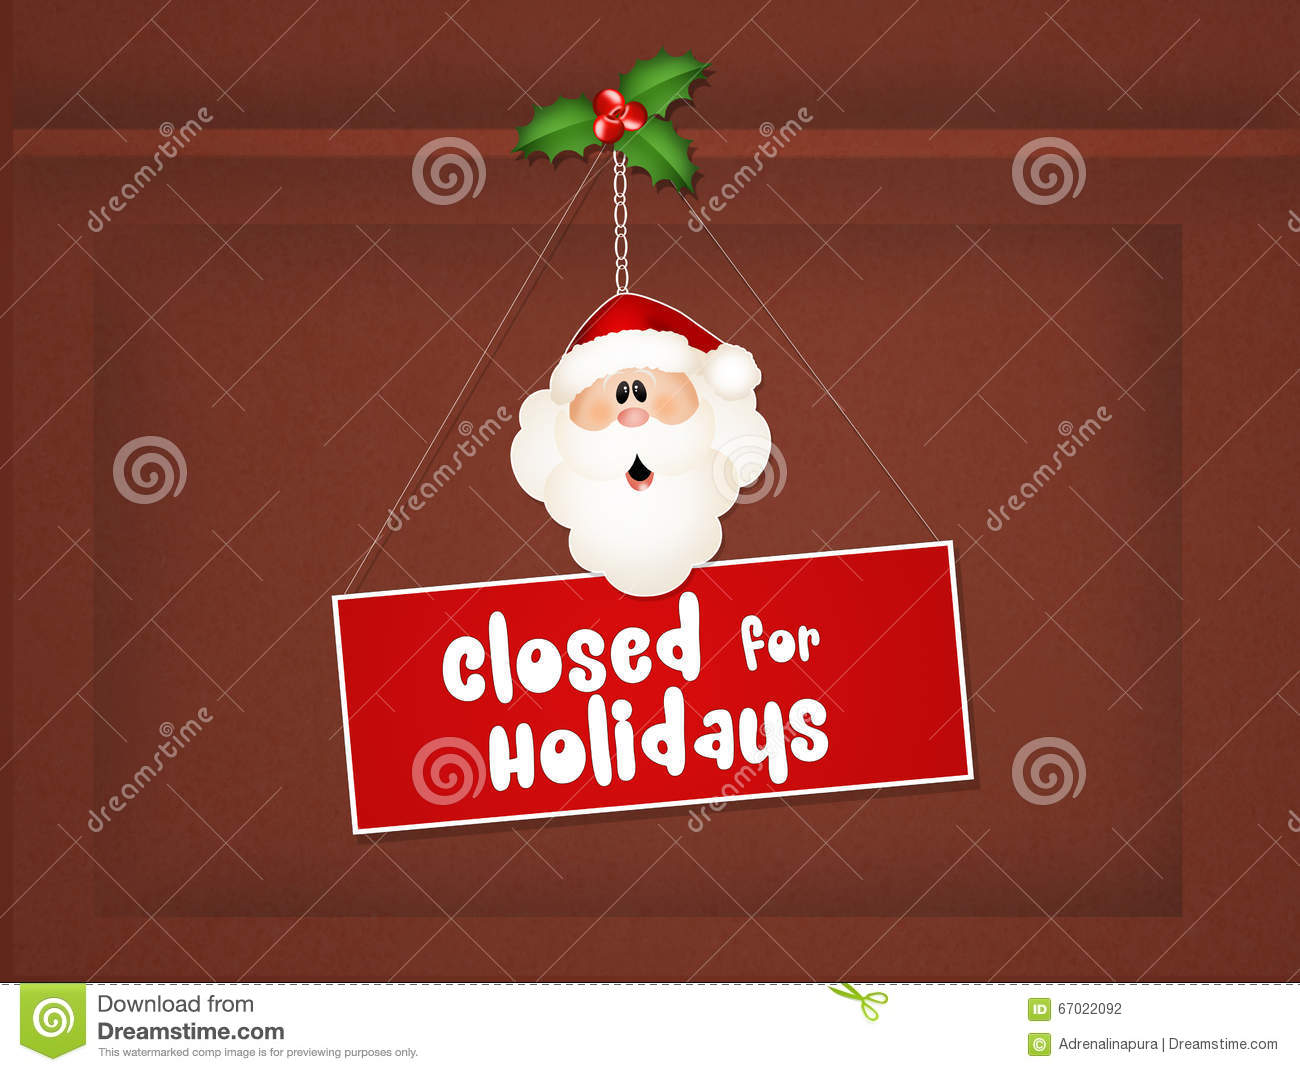 closed for christmas holidays - Closed For Christmas